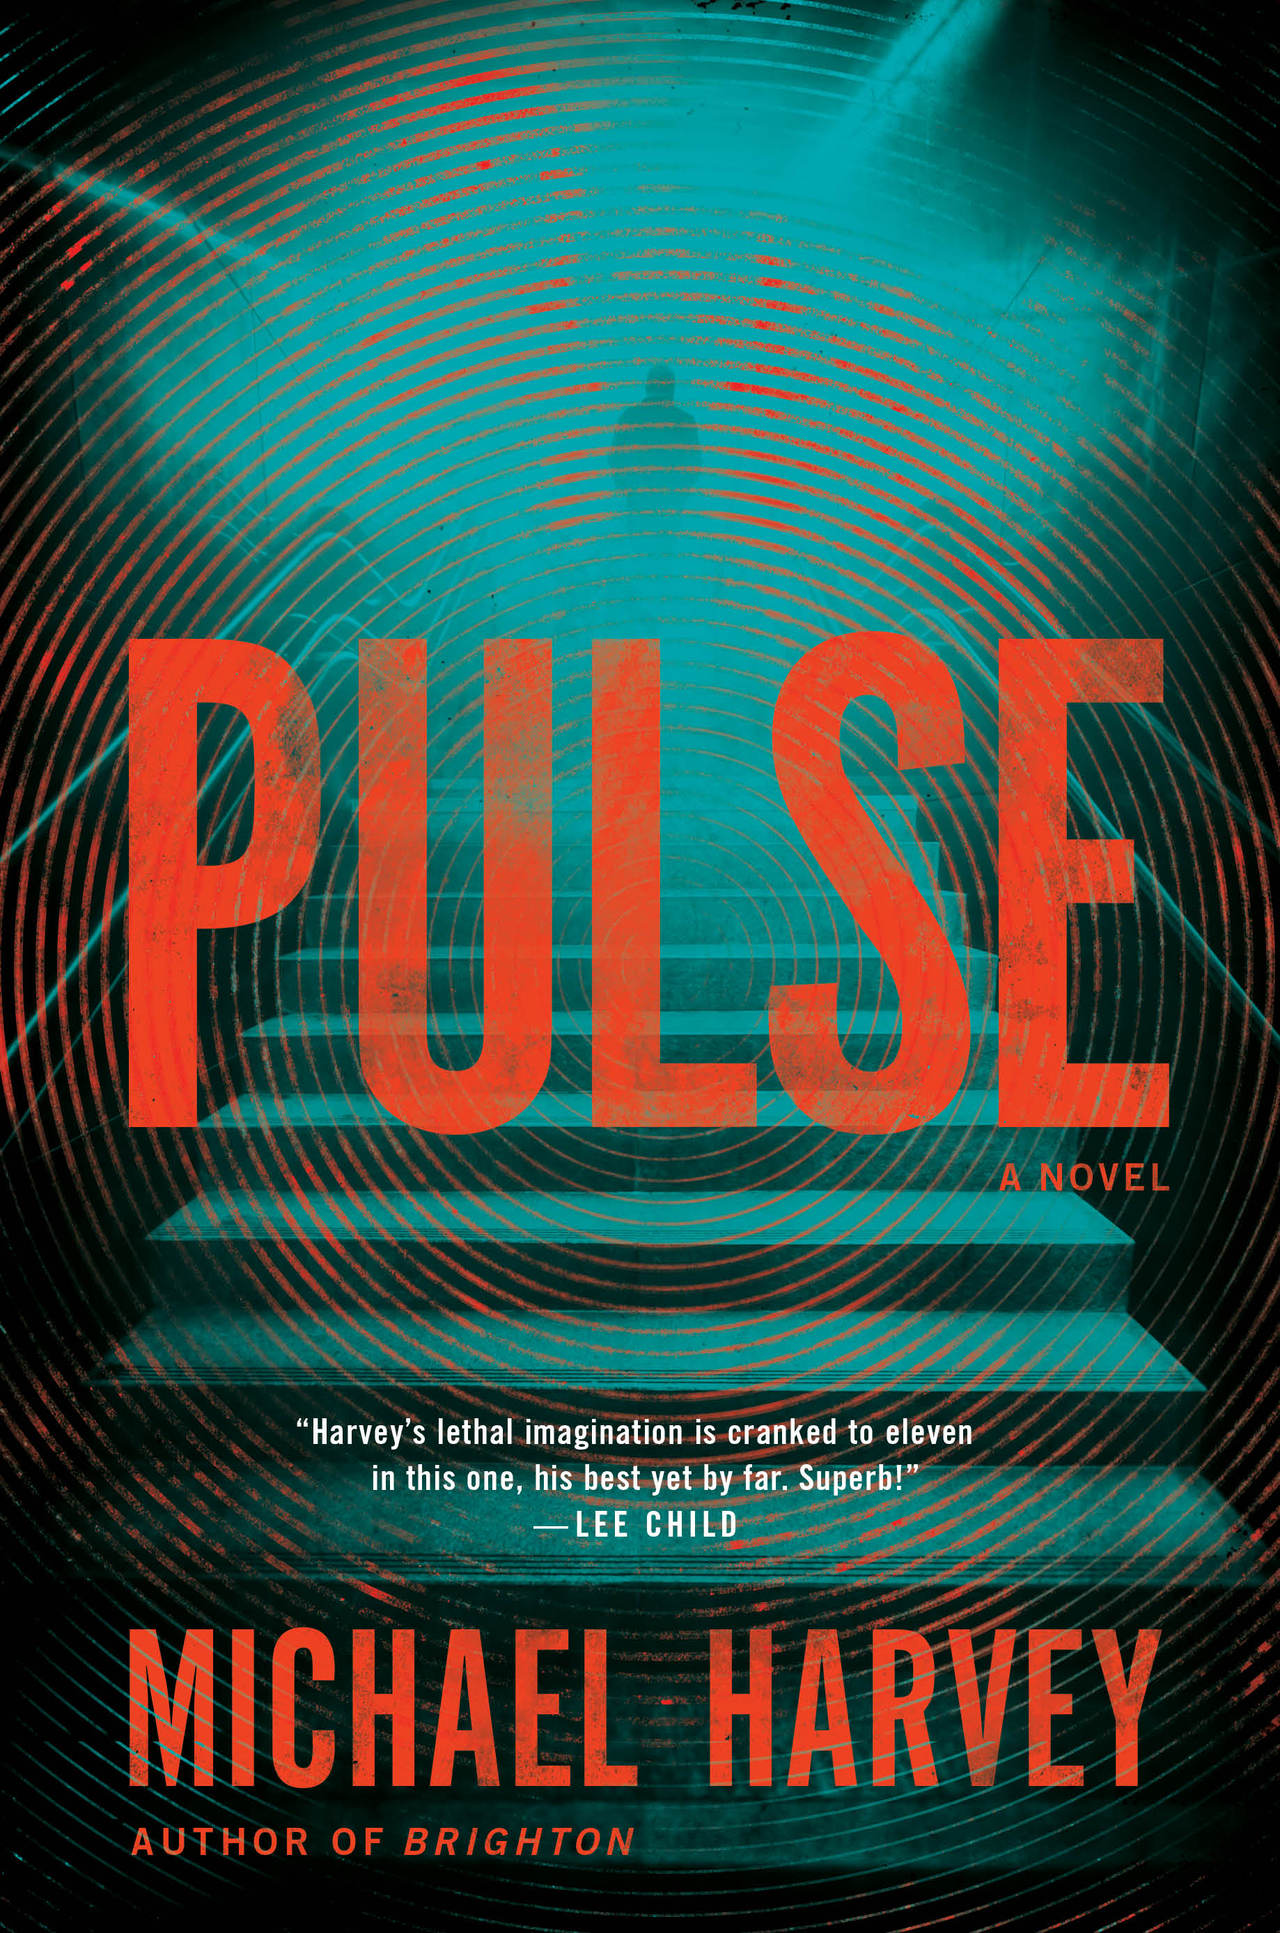 Pulse cover